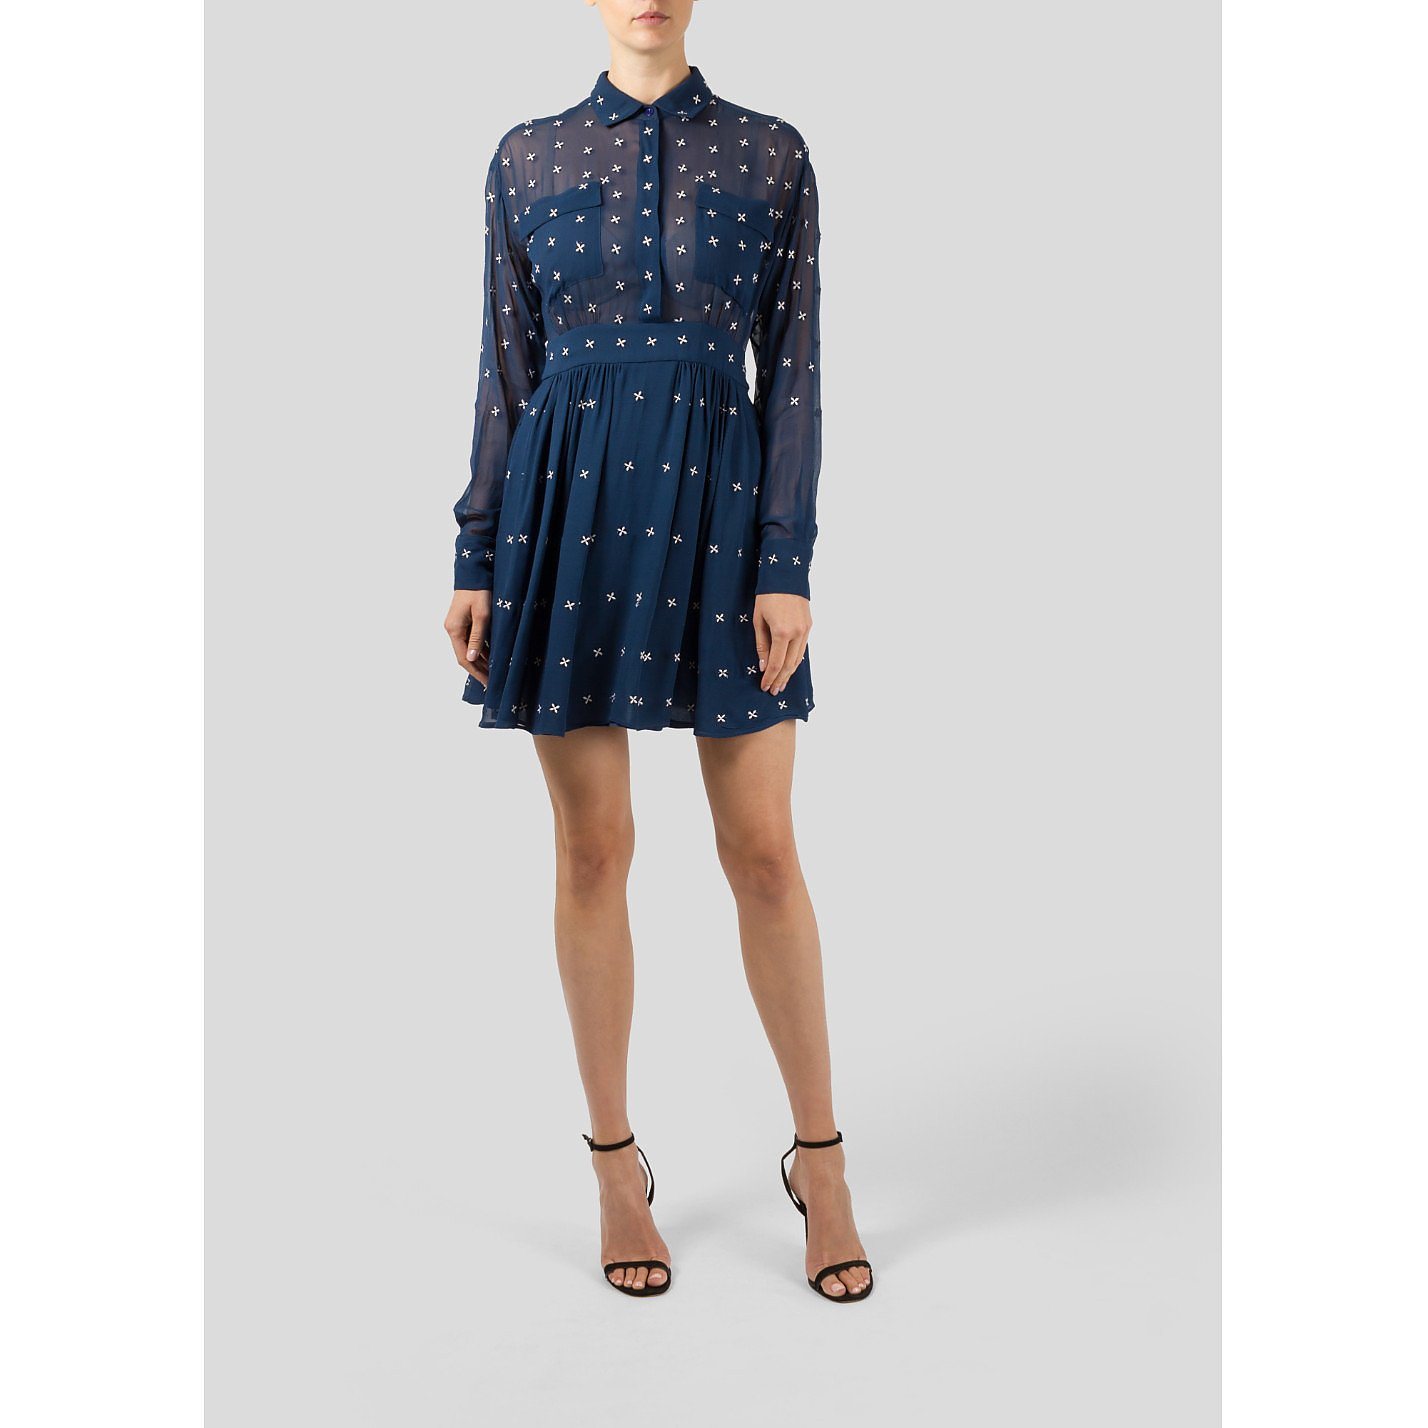 PAUL & JOE Long Sleeve Dress